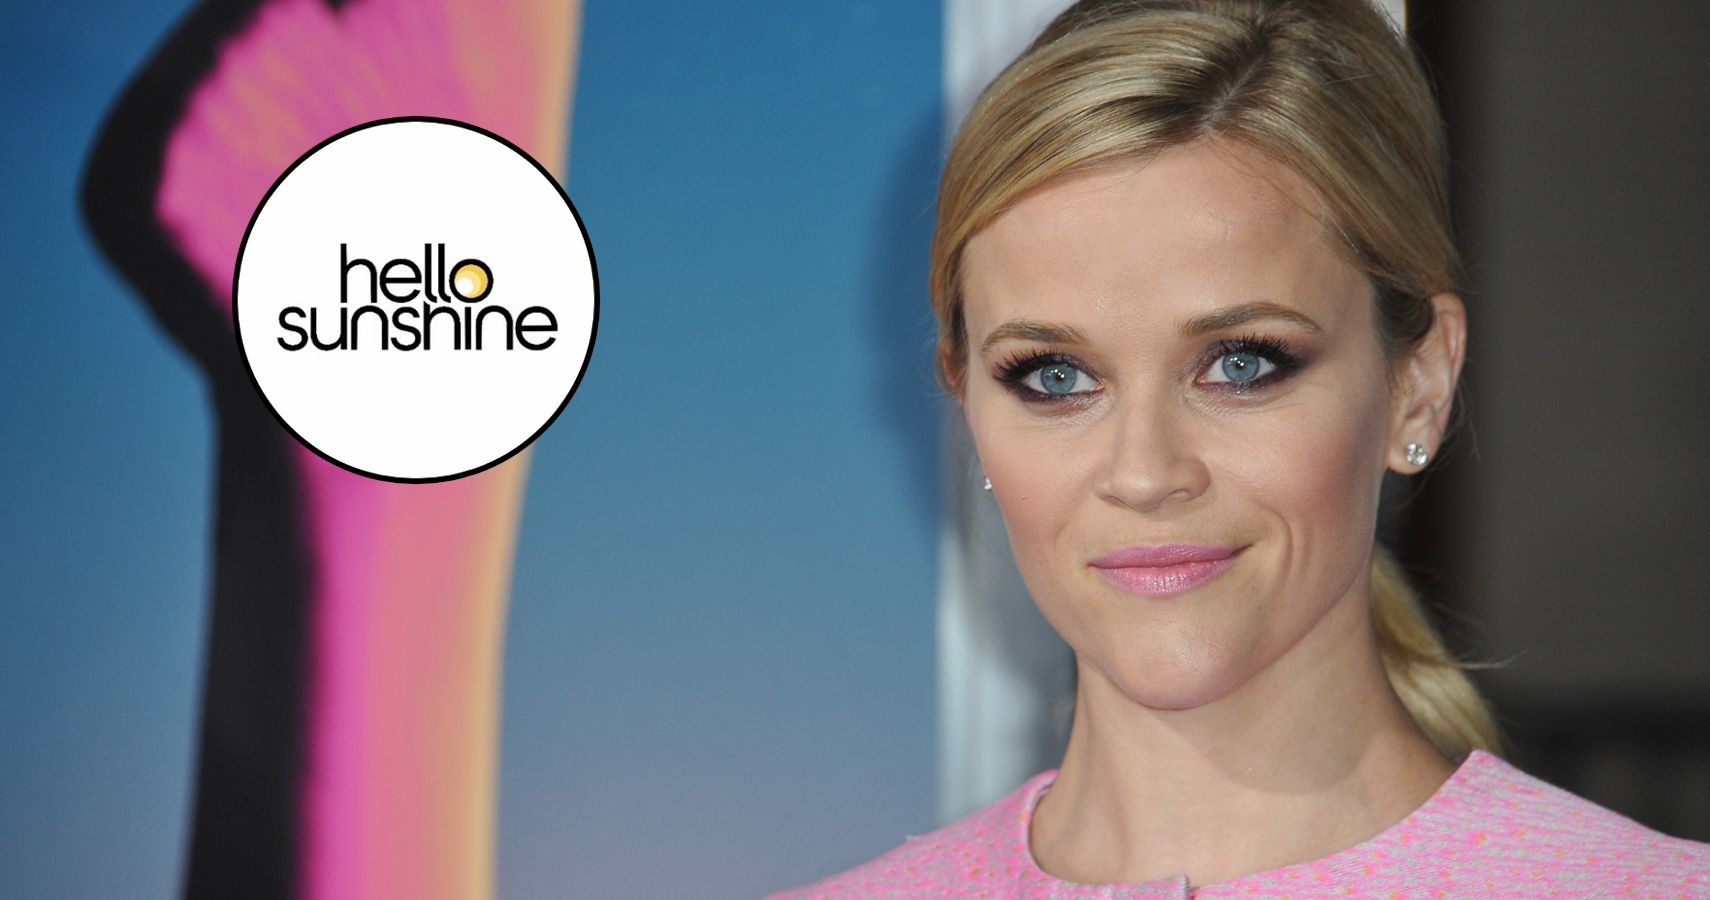 Reese Witherspoon's Hello Sunshine Media Company Sold For $900 Million